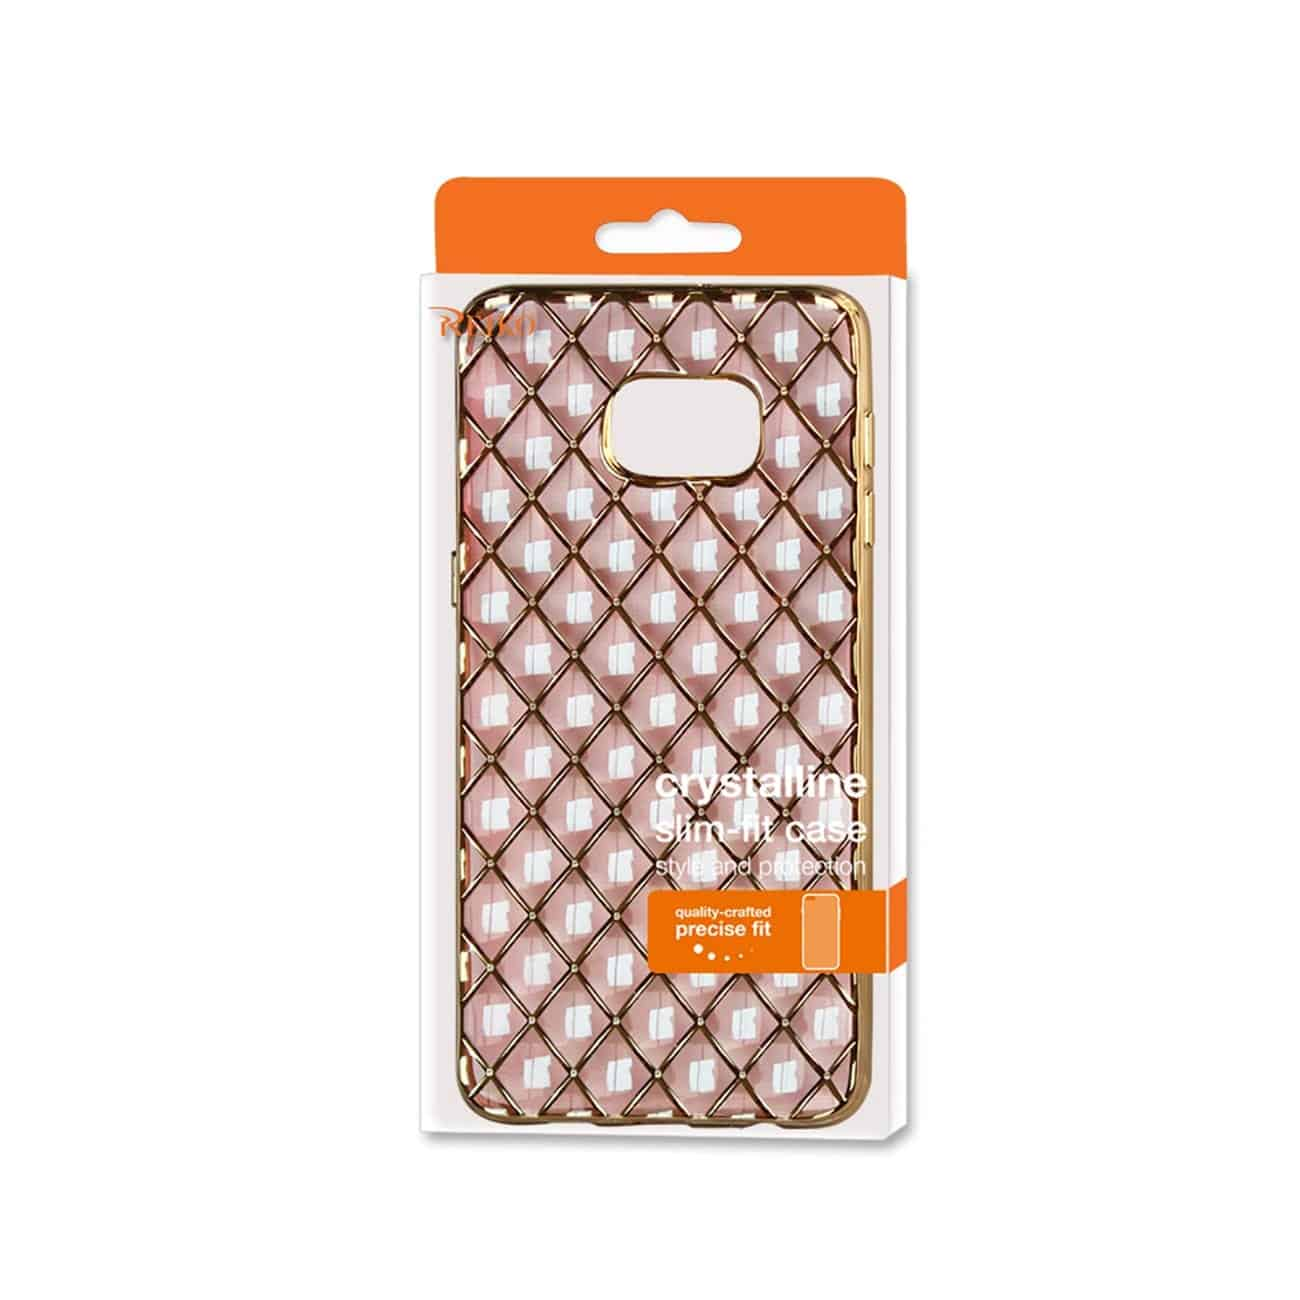 SAMSUNG GALAXY S6 EDGE PLUS FLEXIBLE 3D RHOMBUS PATTERN TPU CASE WITH SHINY FRAME IN PINK